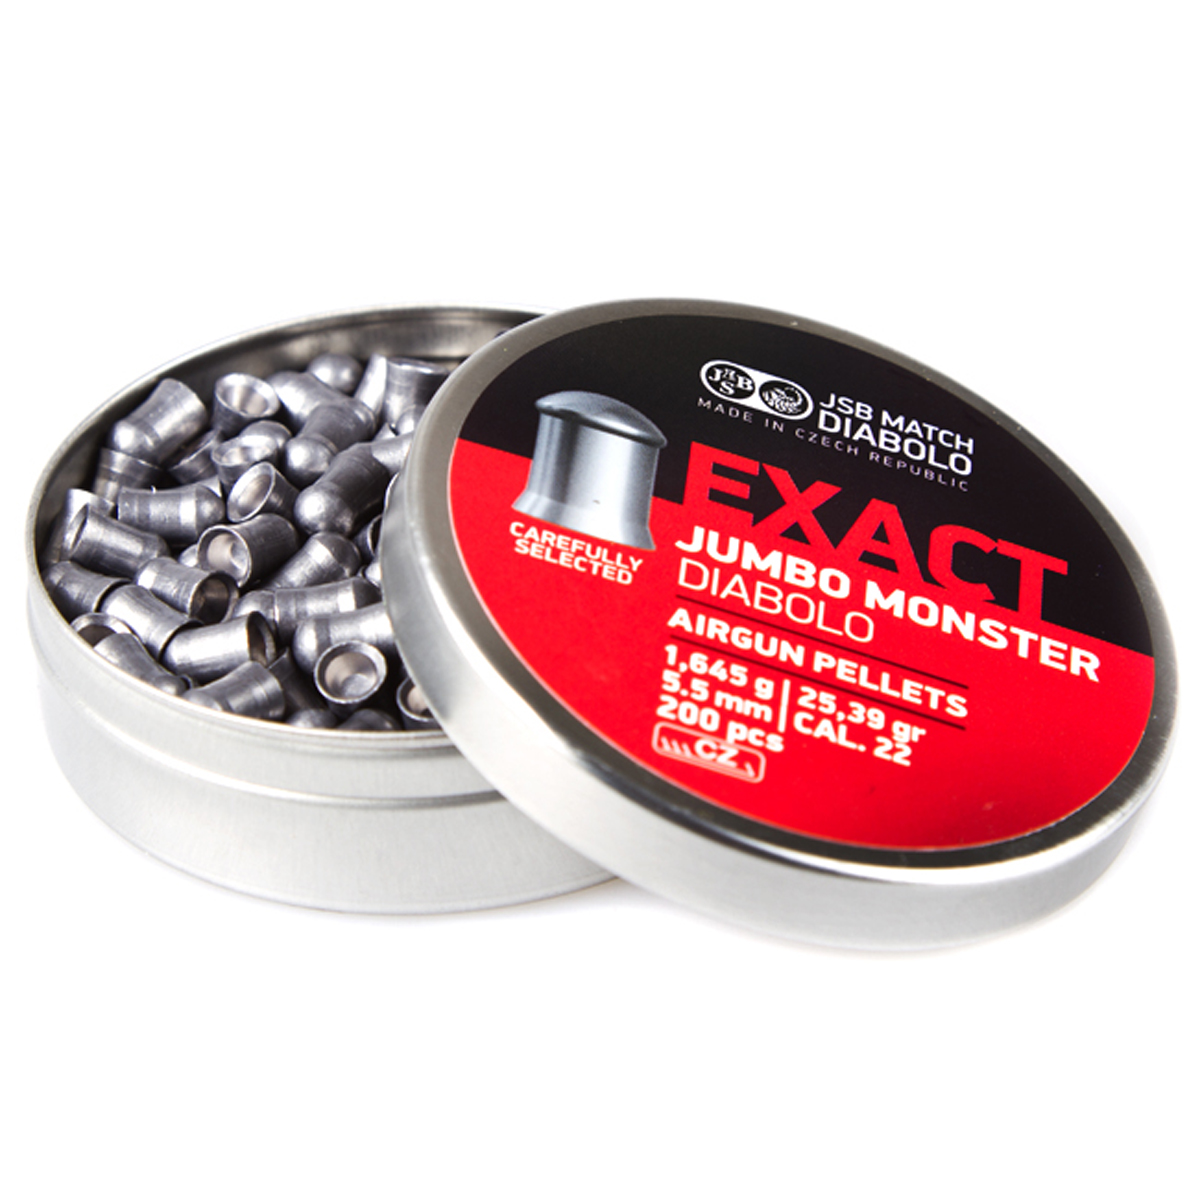 JSB Jumbo Exact monster 5,52mm 1,645g 200kpl/rs